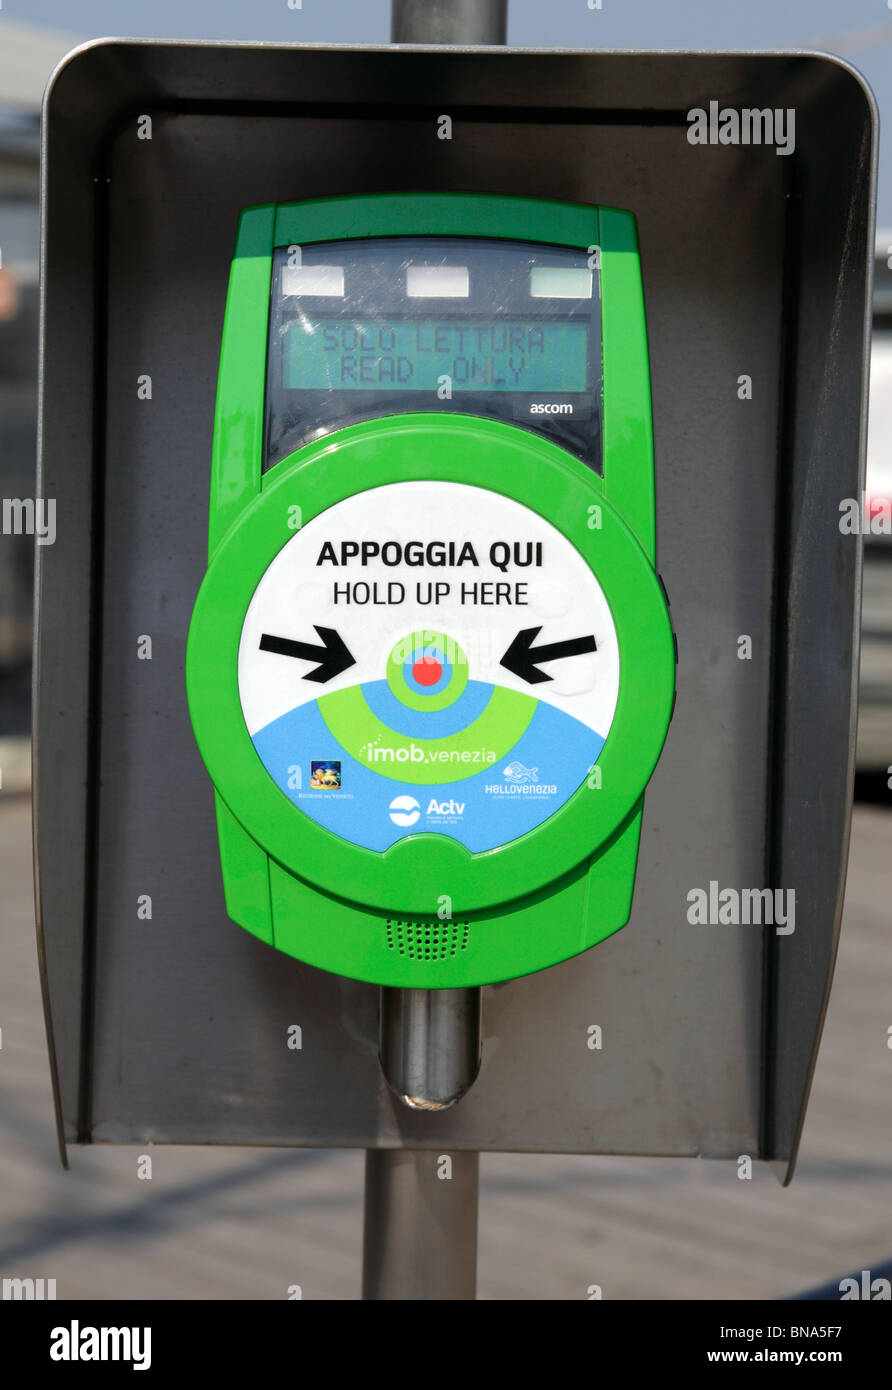 Automatic ticket machine used to validate tickets before boarding the ACTV vaporetto water bus Lido Venice Italy - Stock Image